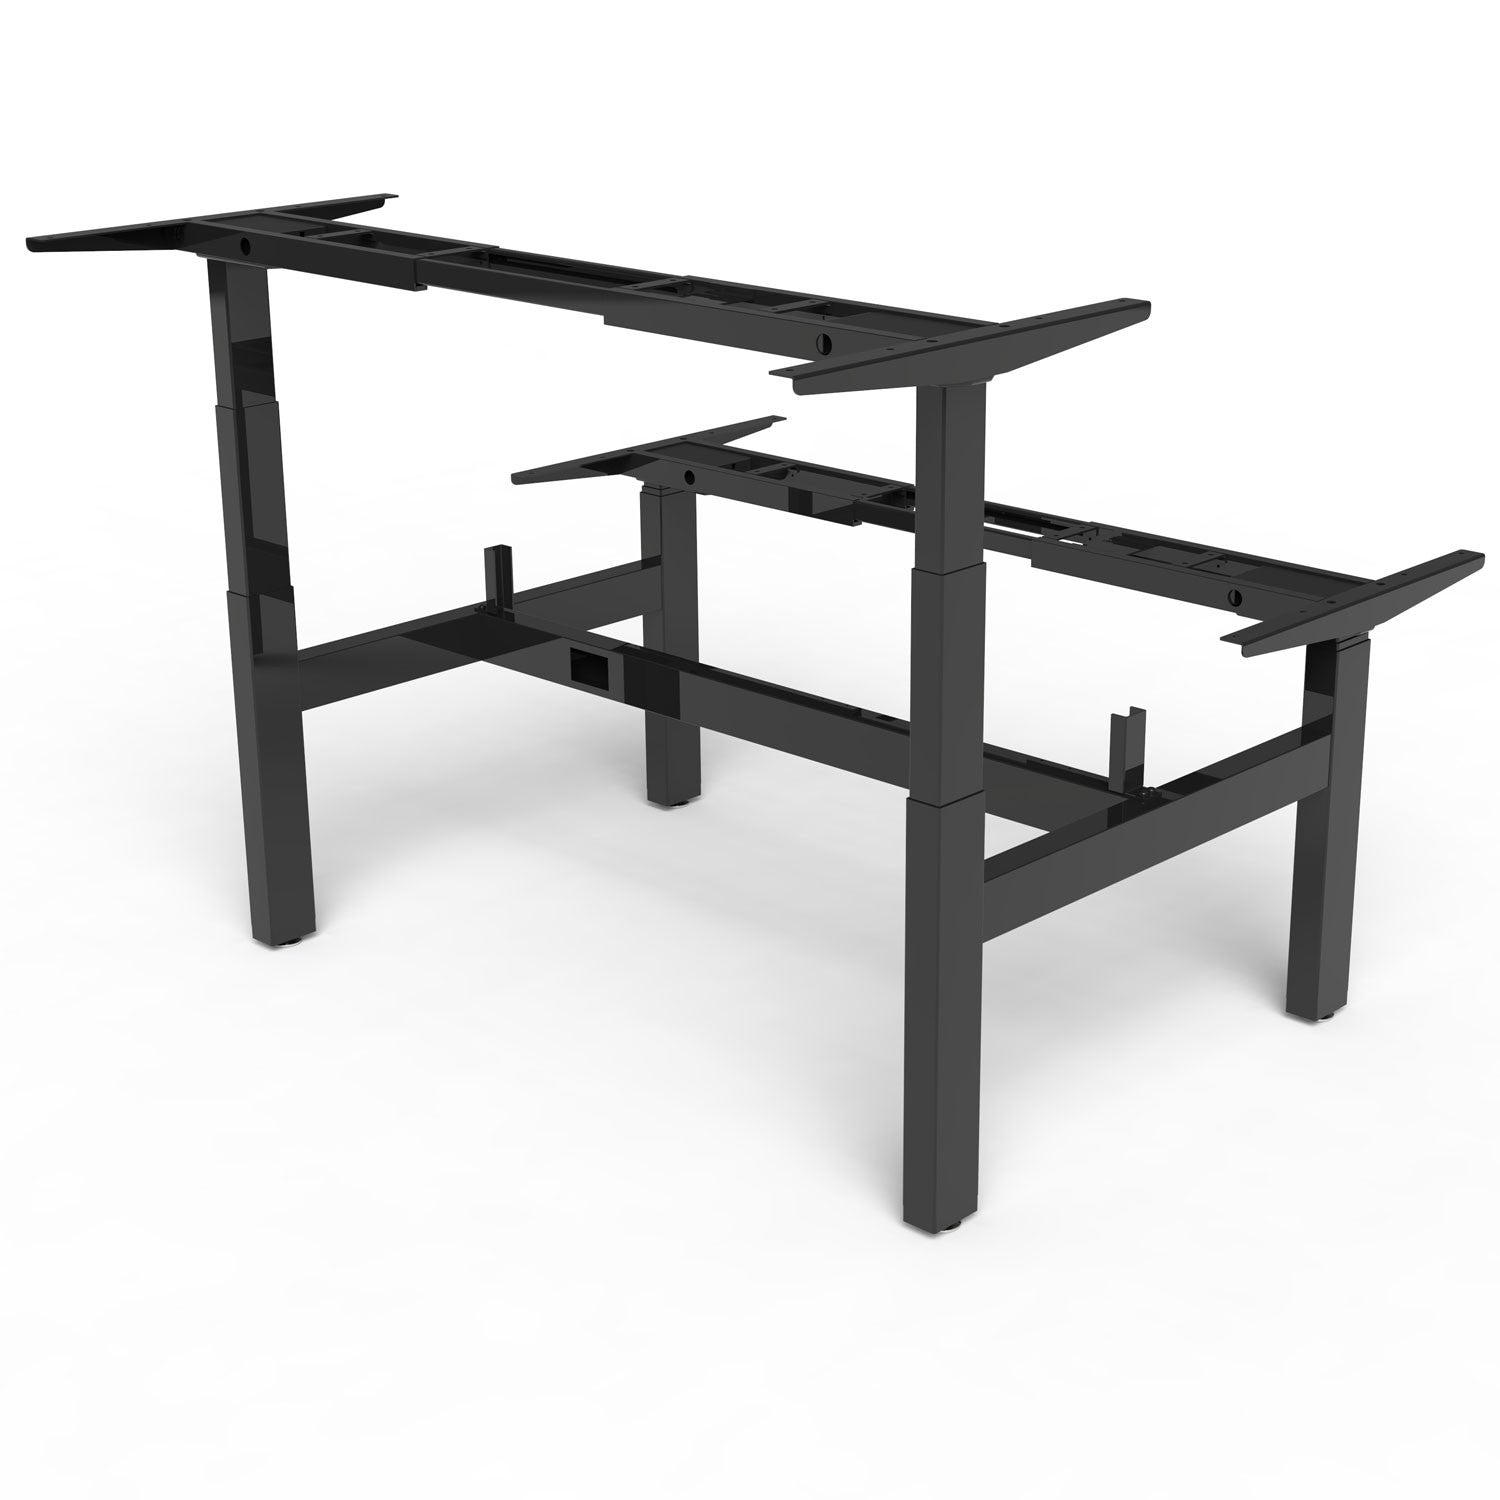 Sit stand bench frame